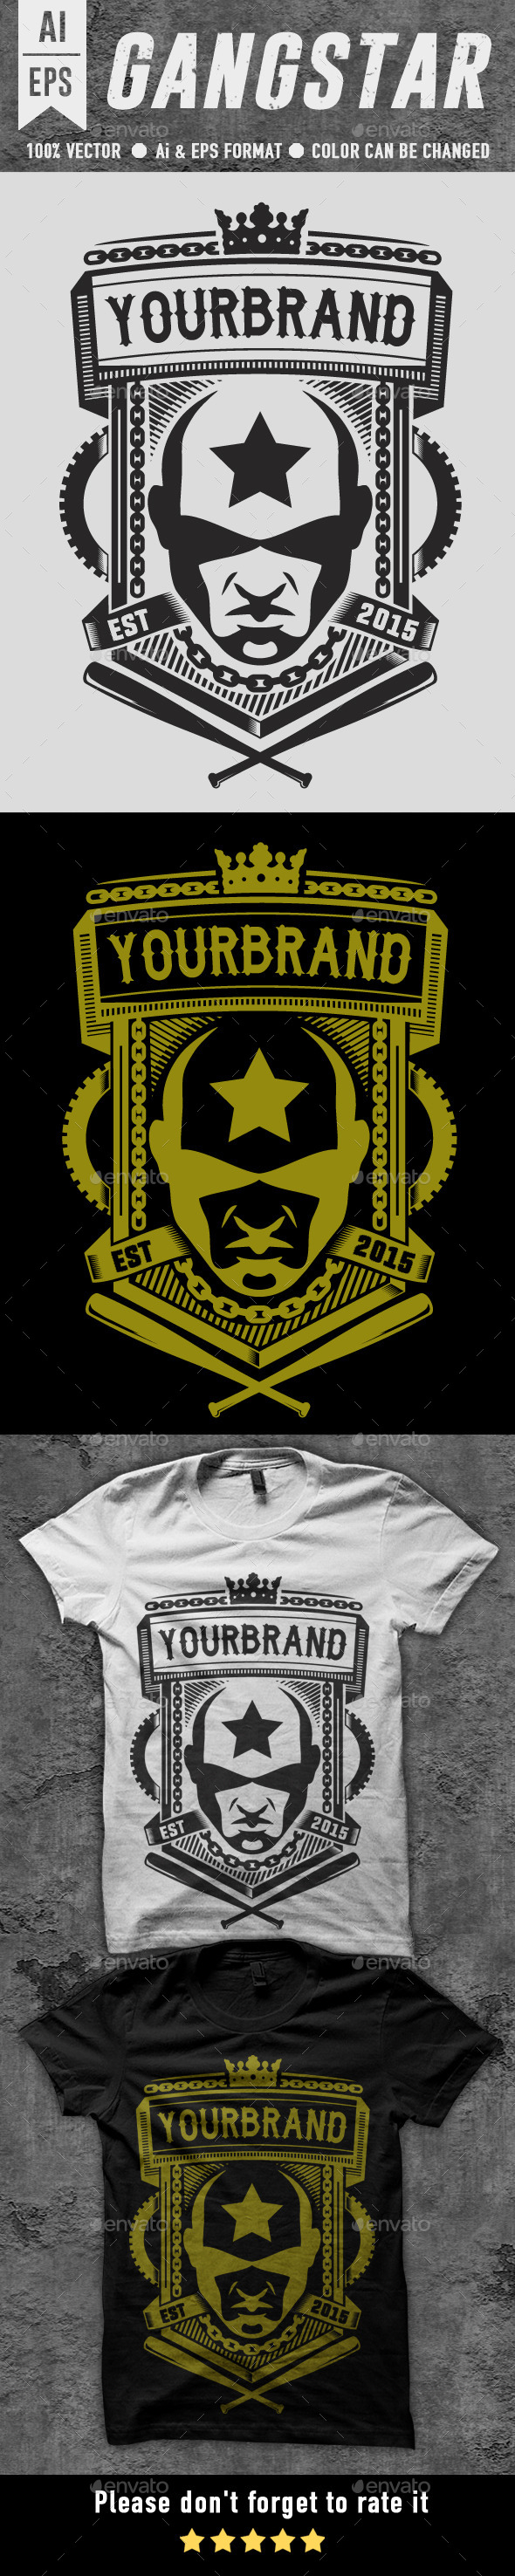 Gangstar T-shirt Design - Designs T-Shirts